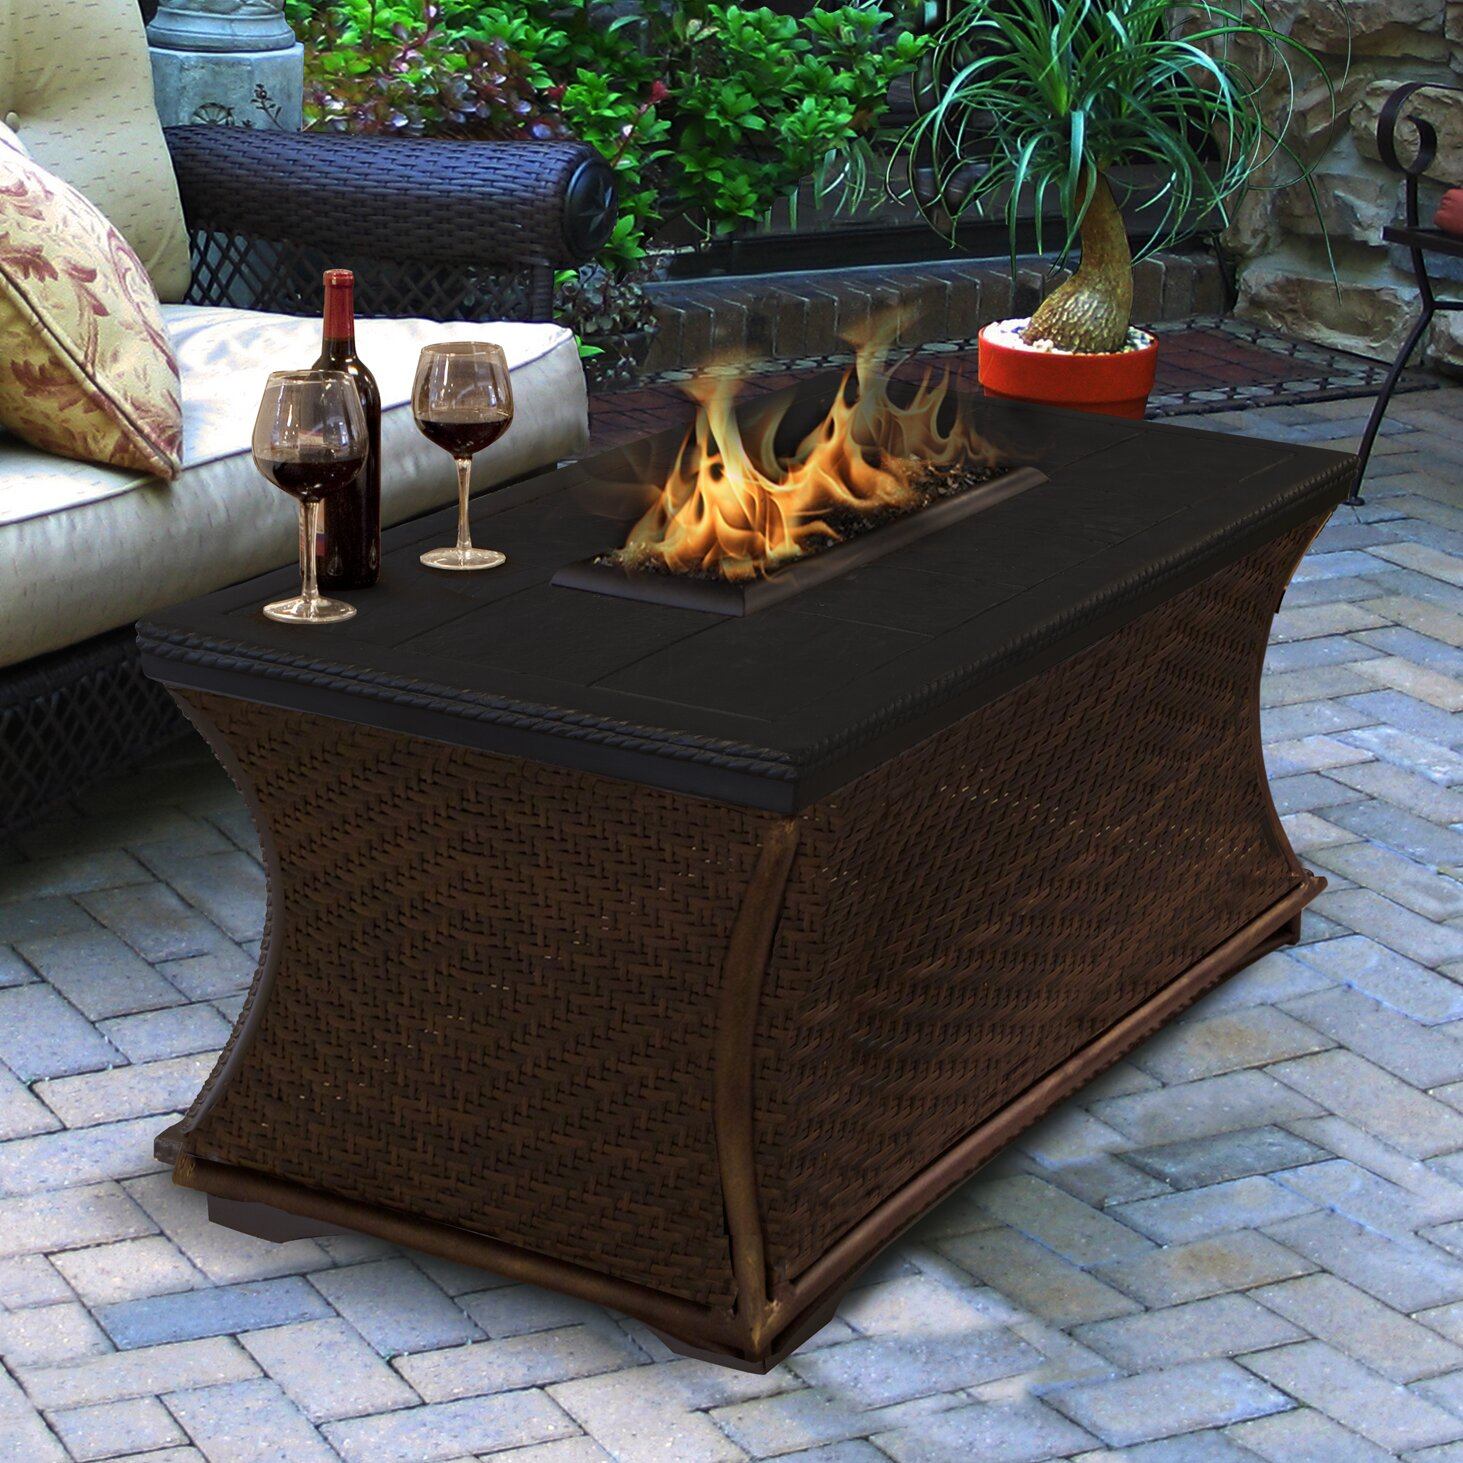 California Outdoor Concepts Mendocino Propane Fire Pit Table Wayfair